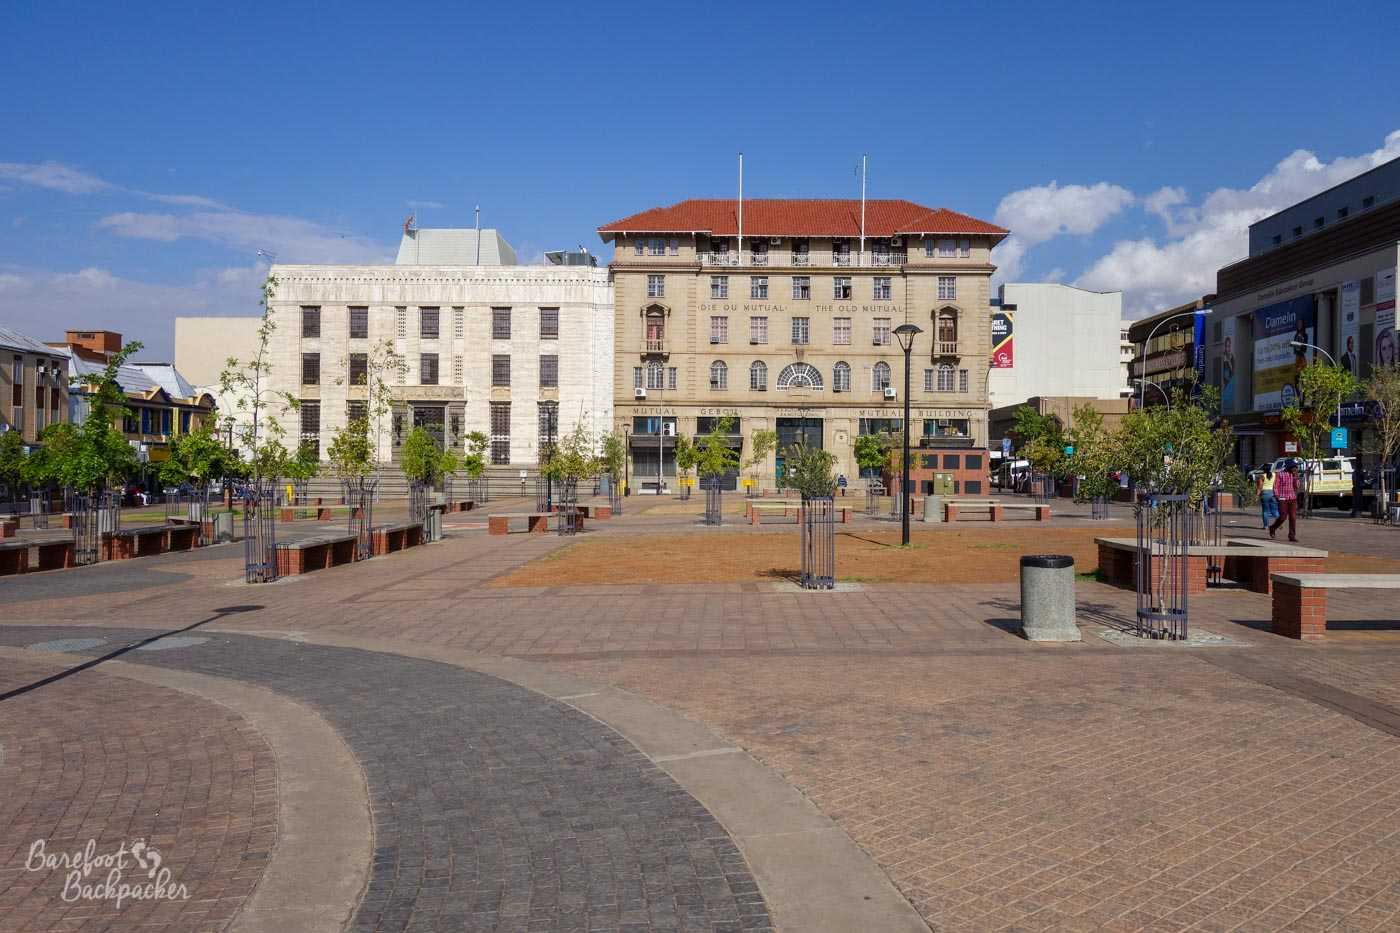 The main square in the centre of Bloemfontein